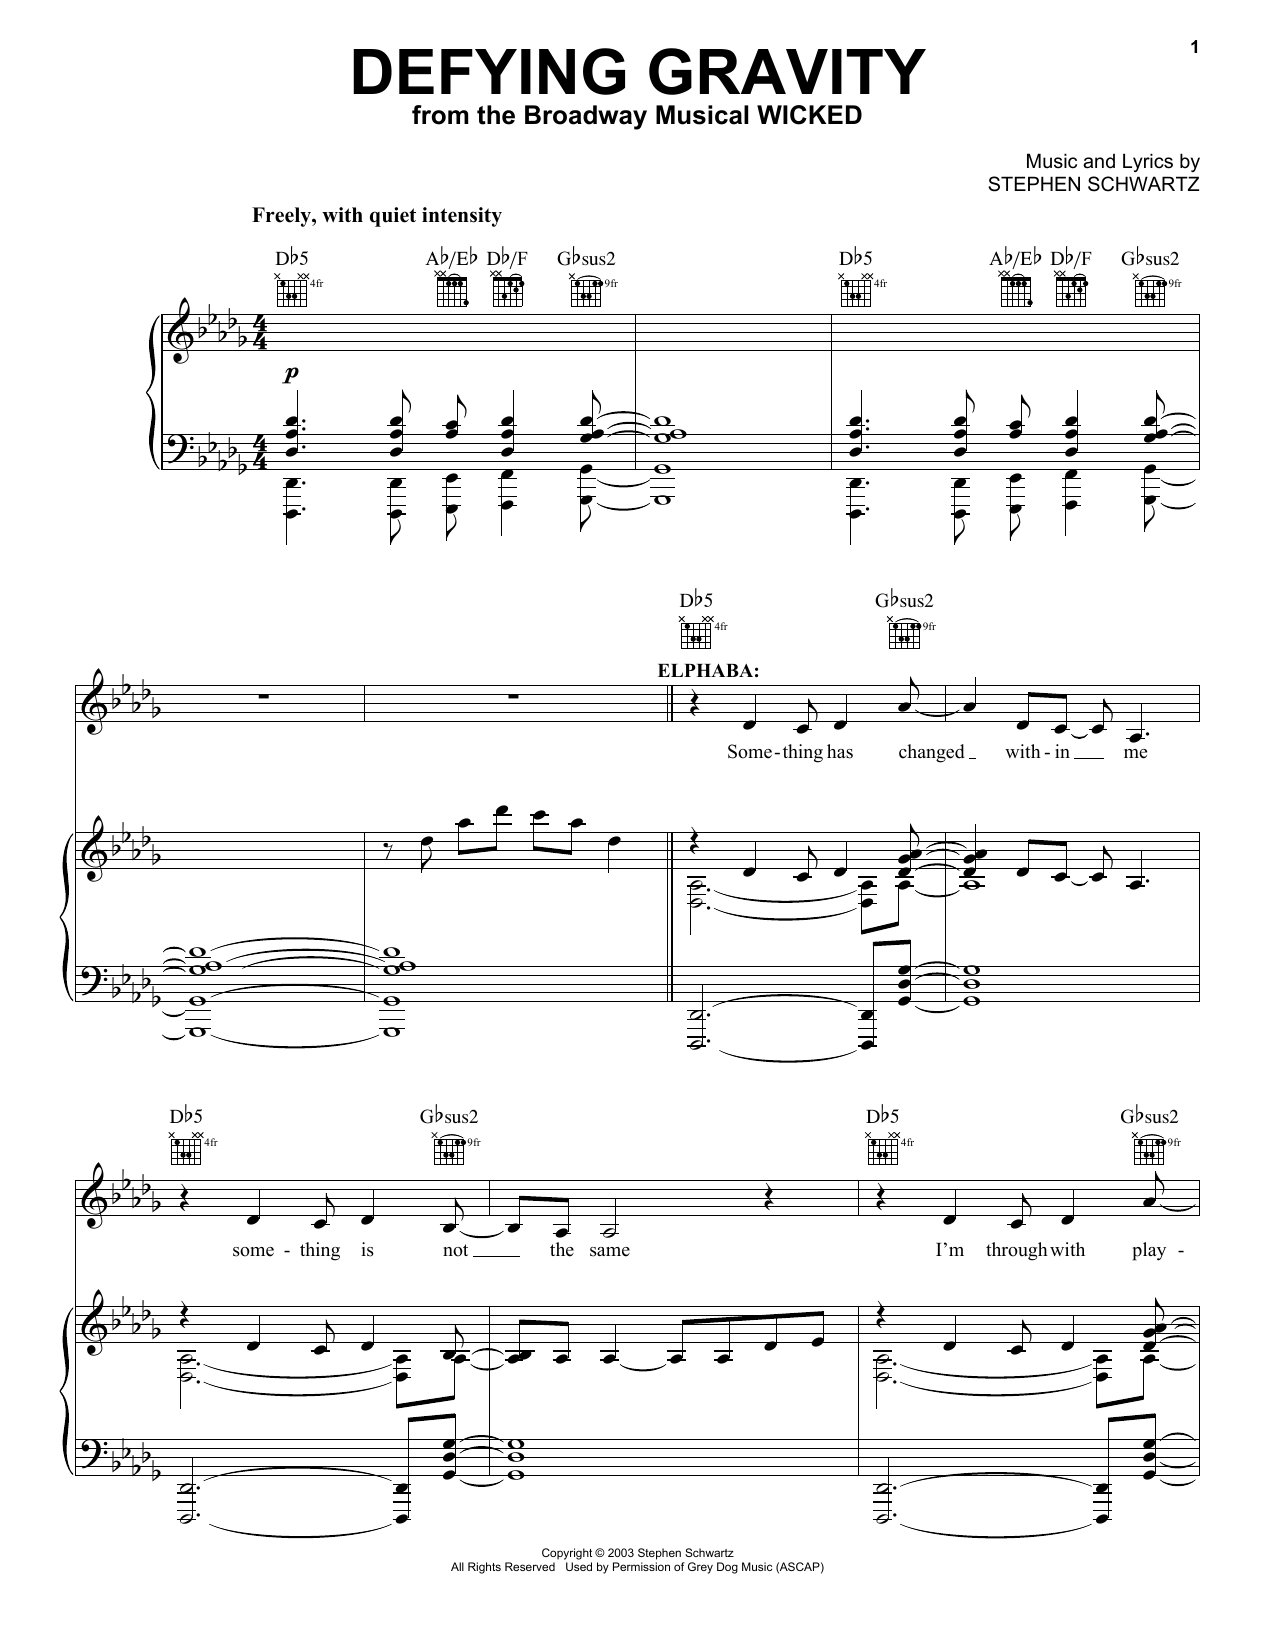 Stephen Schwartz Defying Gravity (from Wicked) sheet music notes and chords. Download Printable PDF.